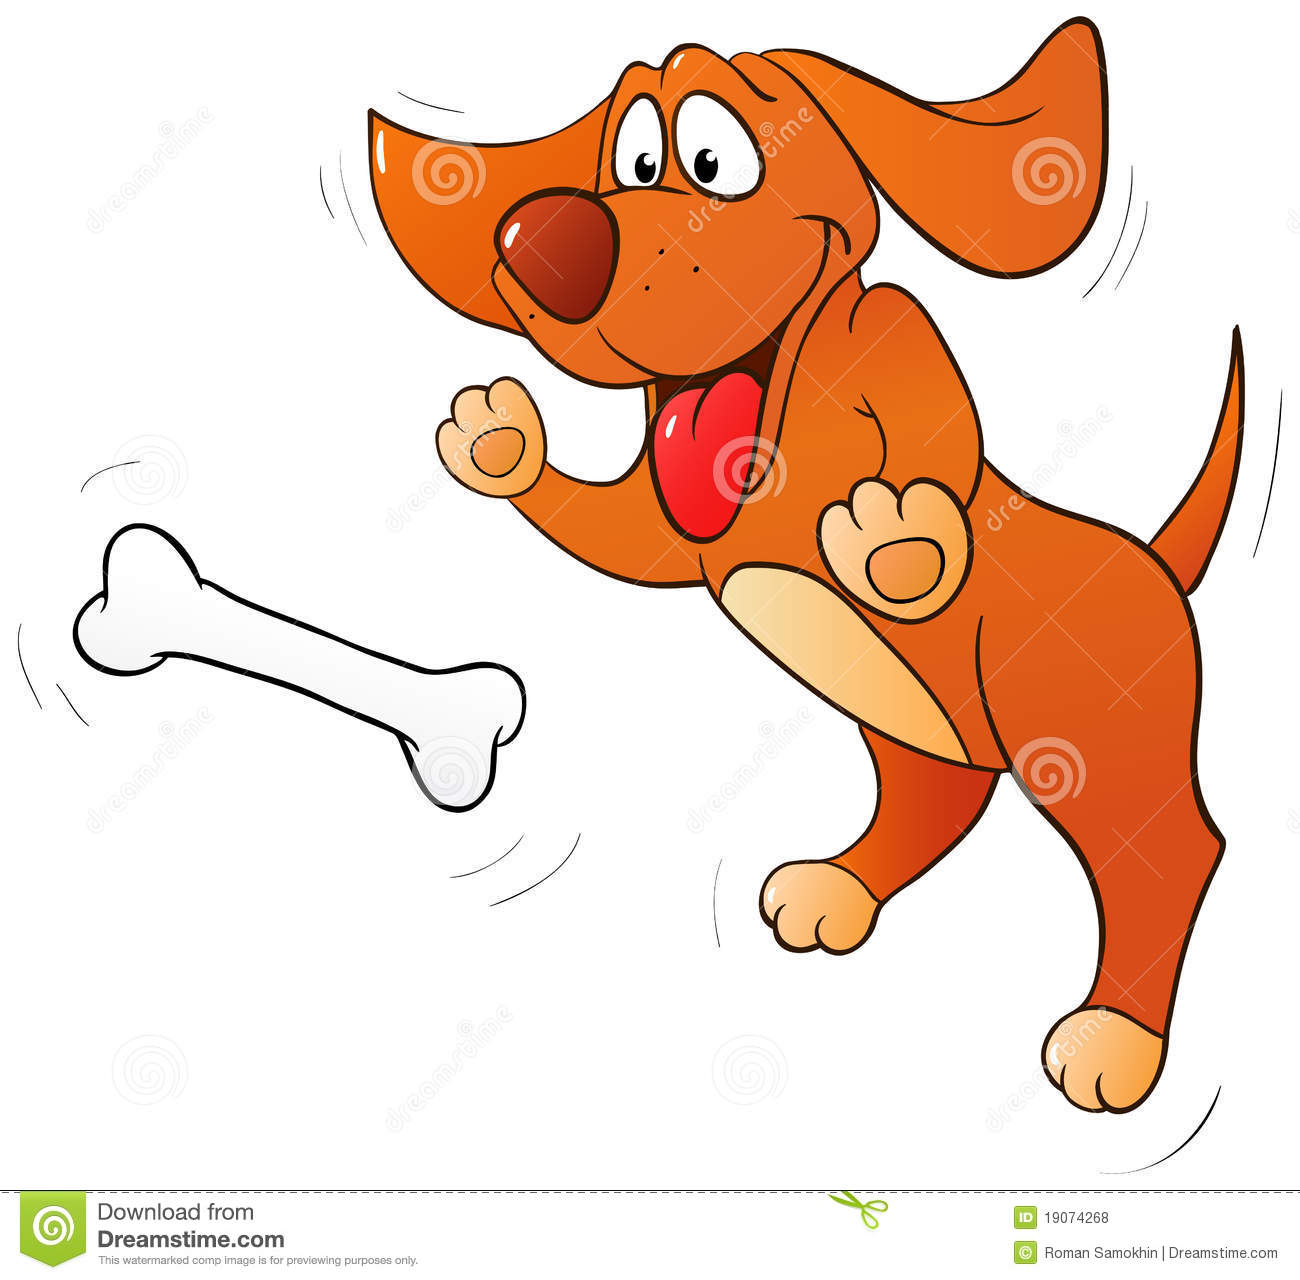 Real dog jumping clipart graphic Real dog jumping clipart - ClipartFest graphic